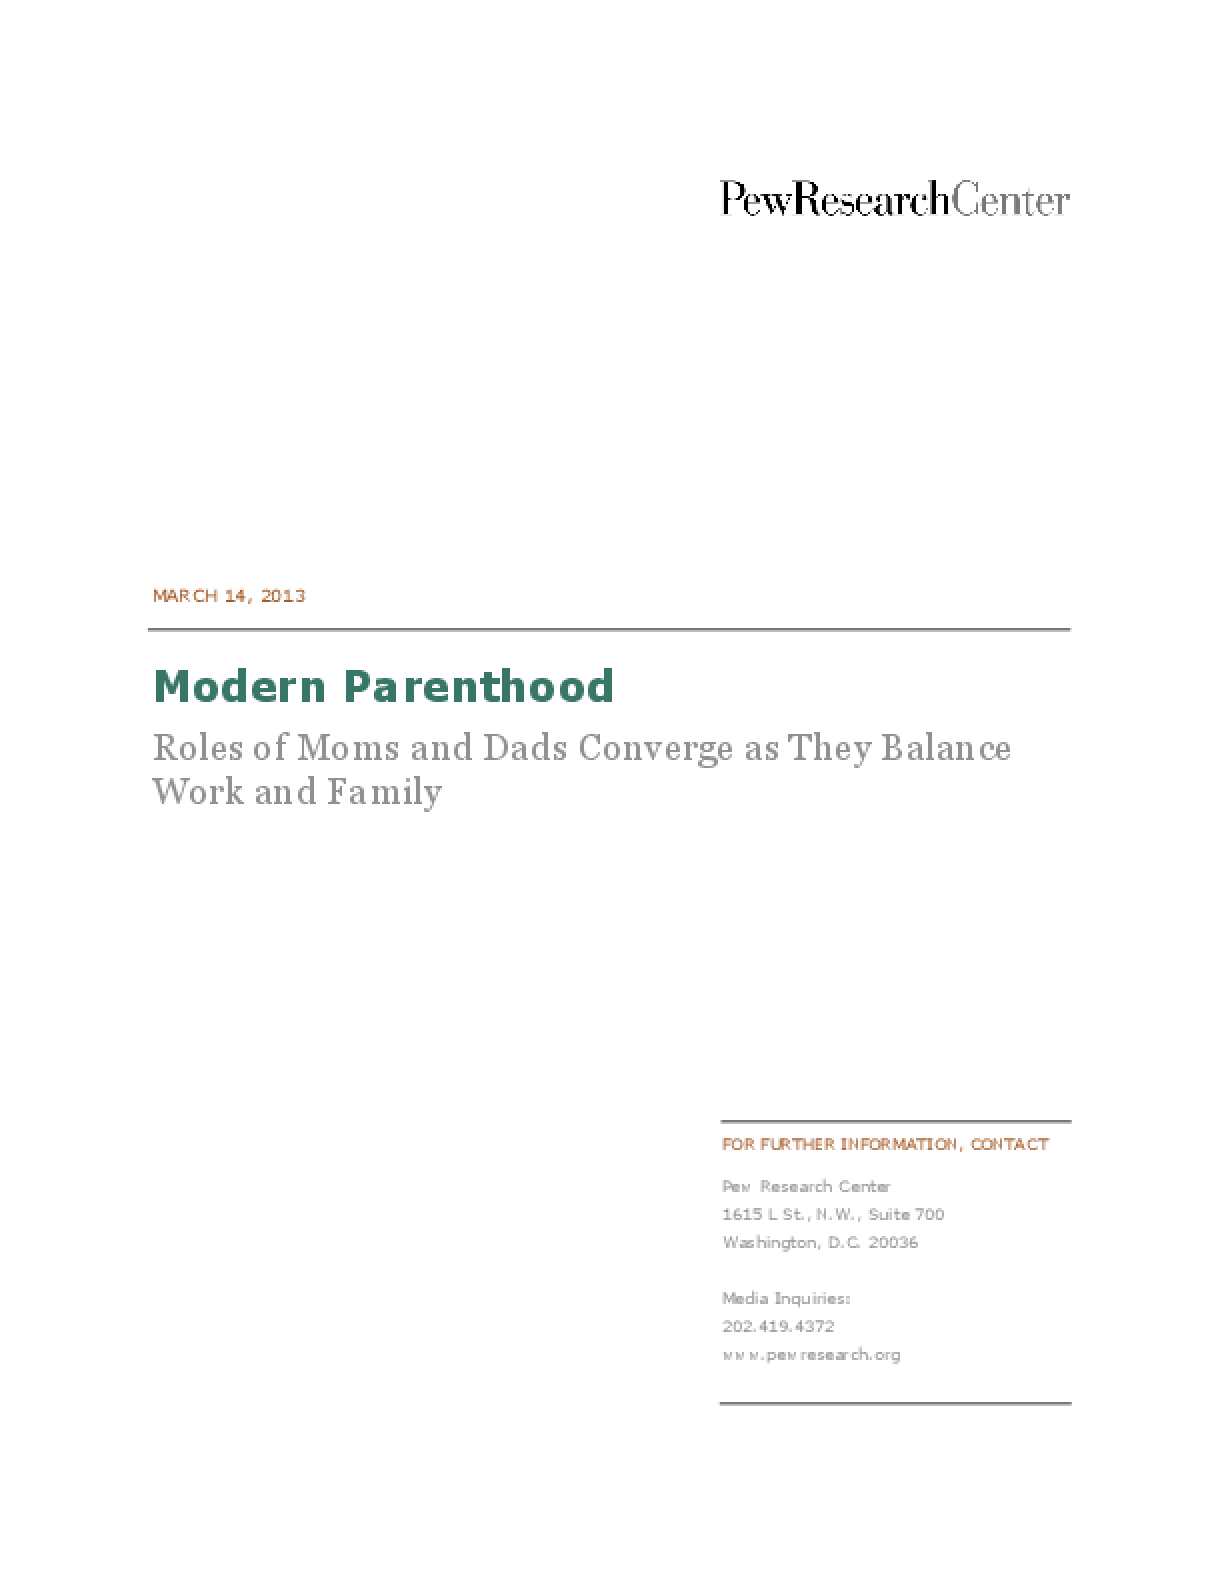 Modern Parenthood: Roles of Moms and Dads Converge as They Balance Work and Family